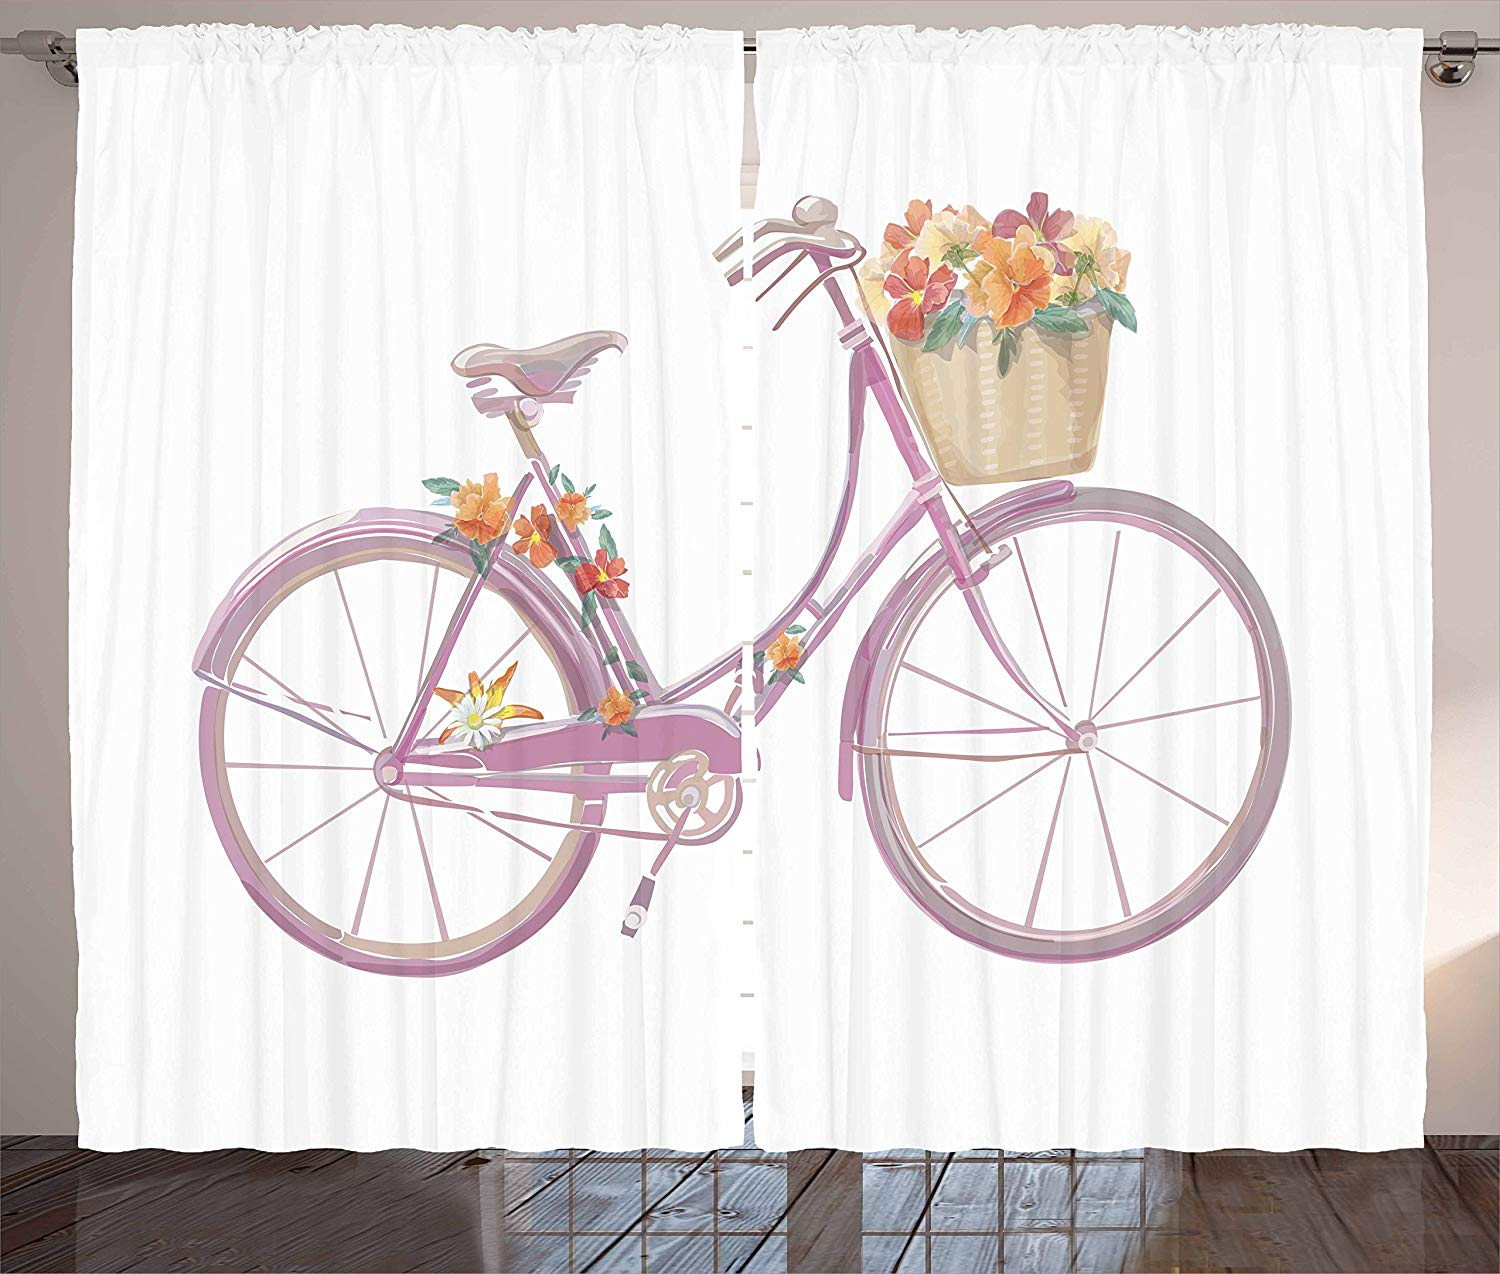 Bicycle Curtains Watercolor Illustration Of A Pink Bicycle With Flowers Romantic Vintage Artistic Living Room Bedroom Window